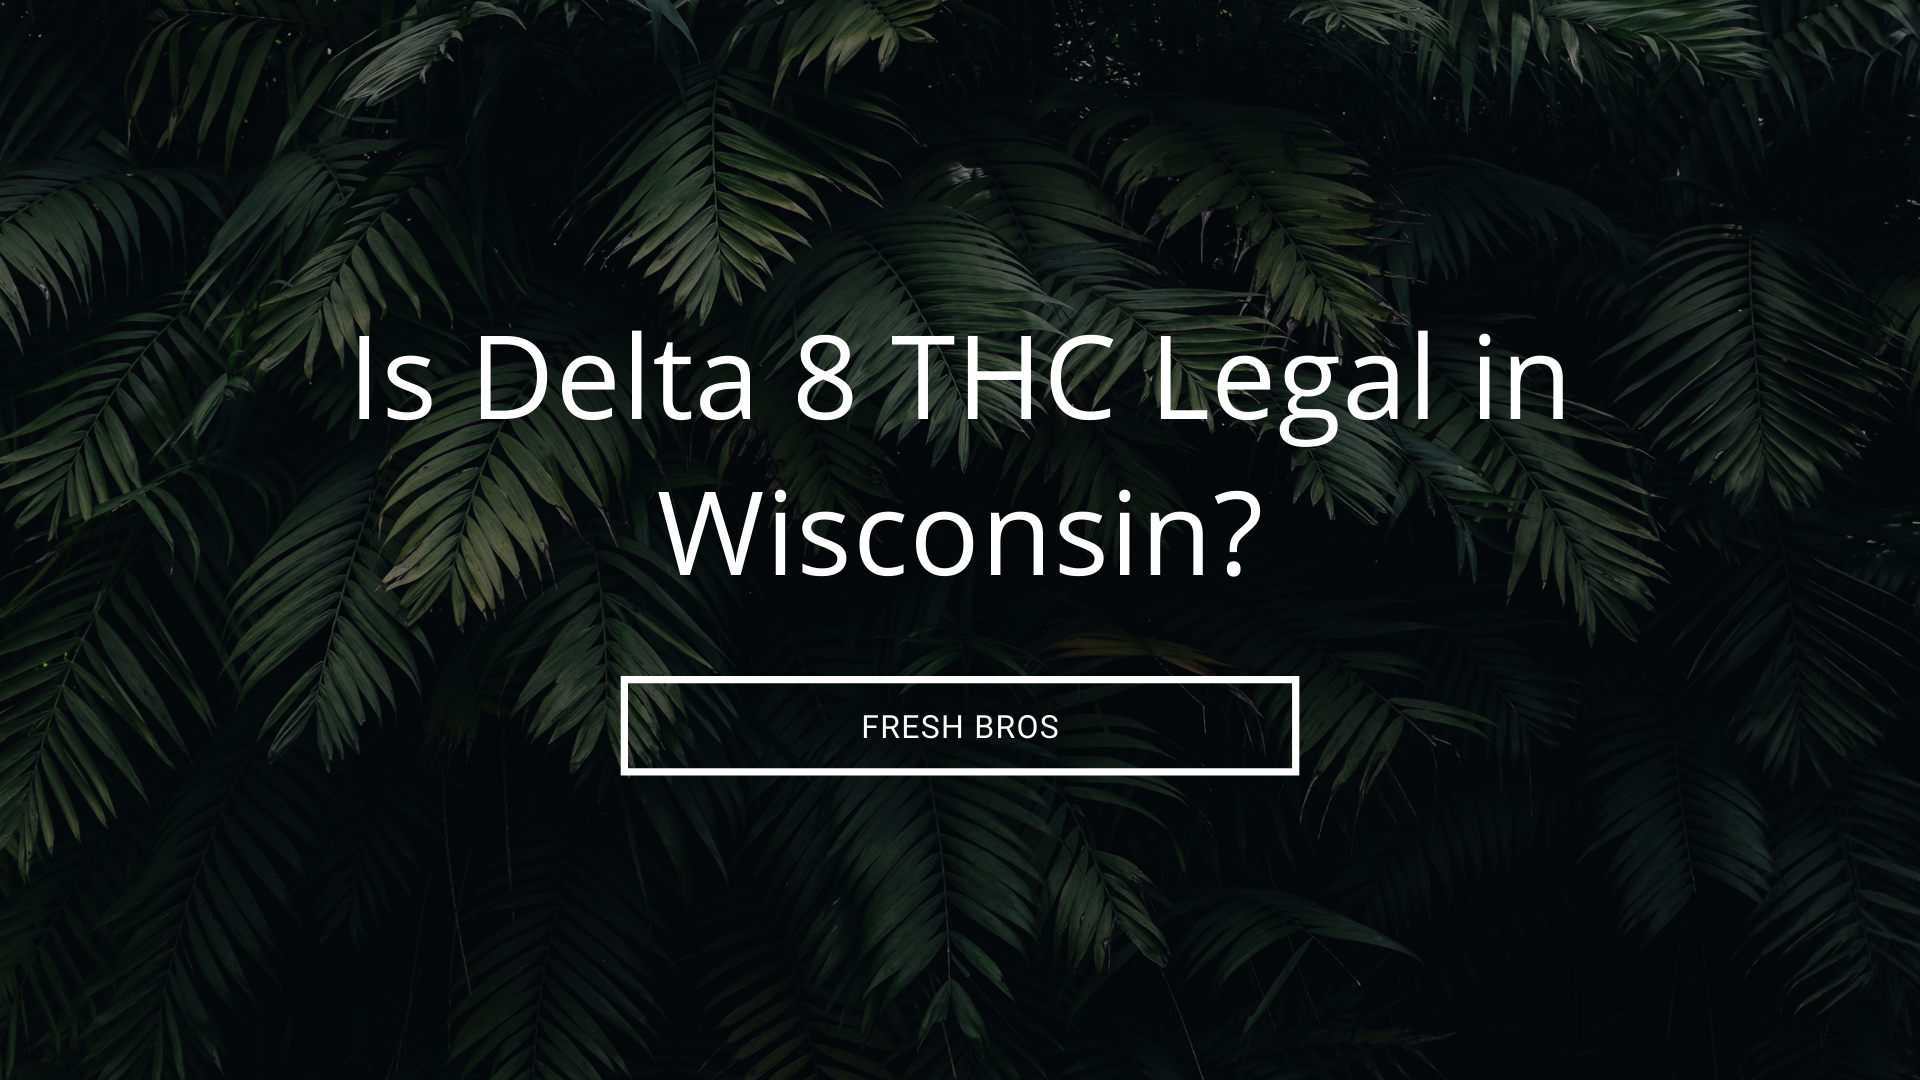 Is Delta 8 THC Legal in Wisconsin?